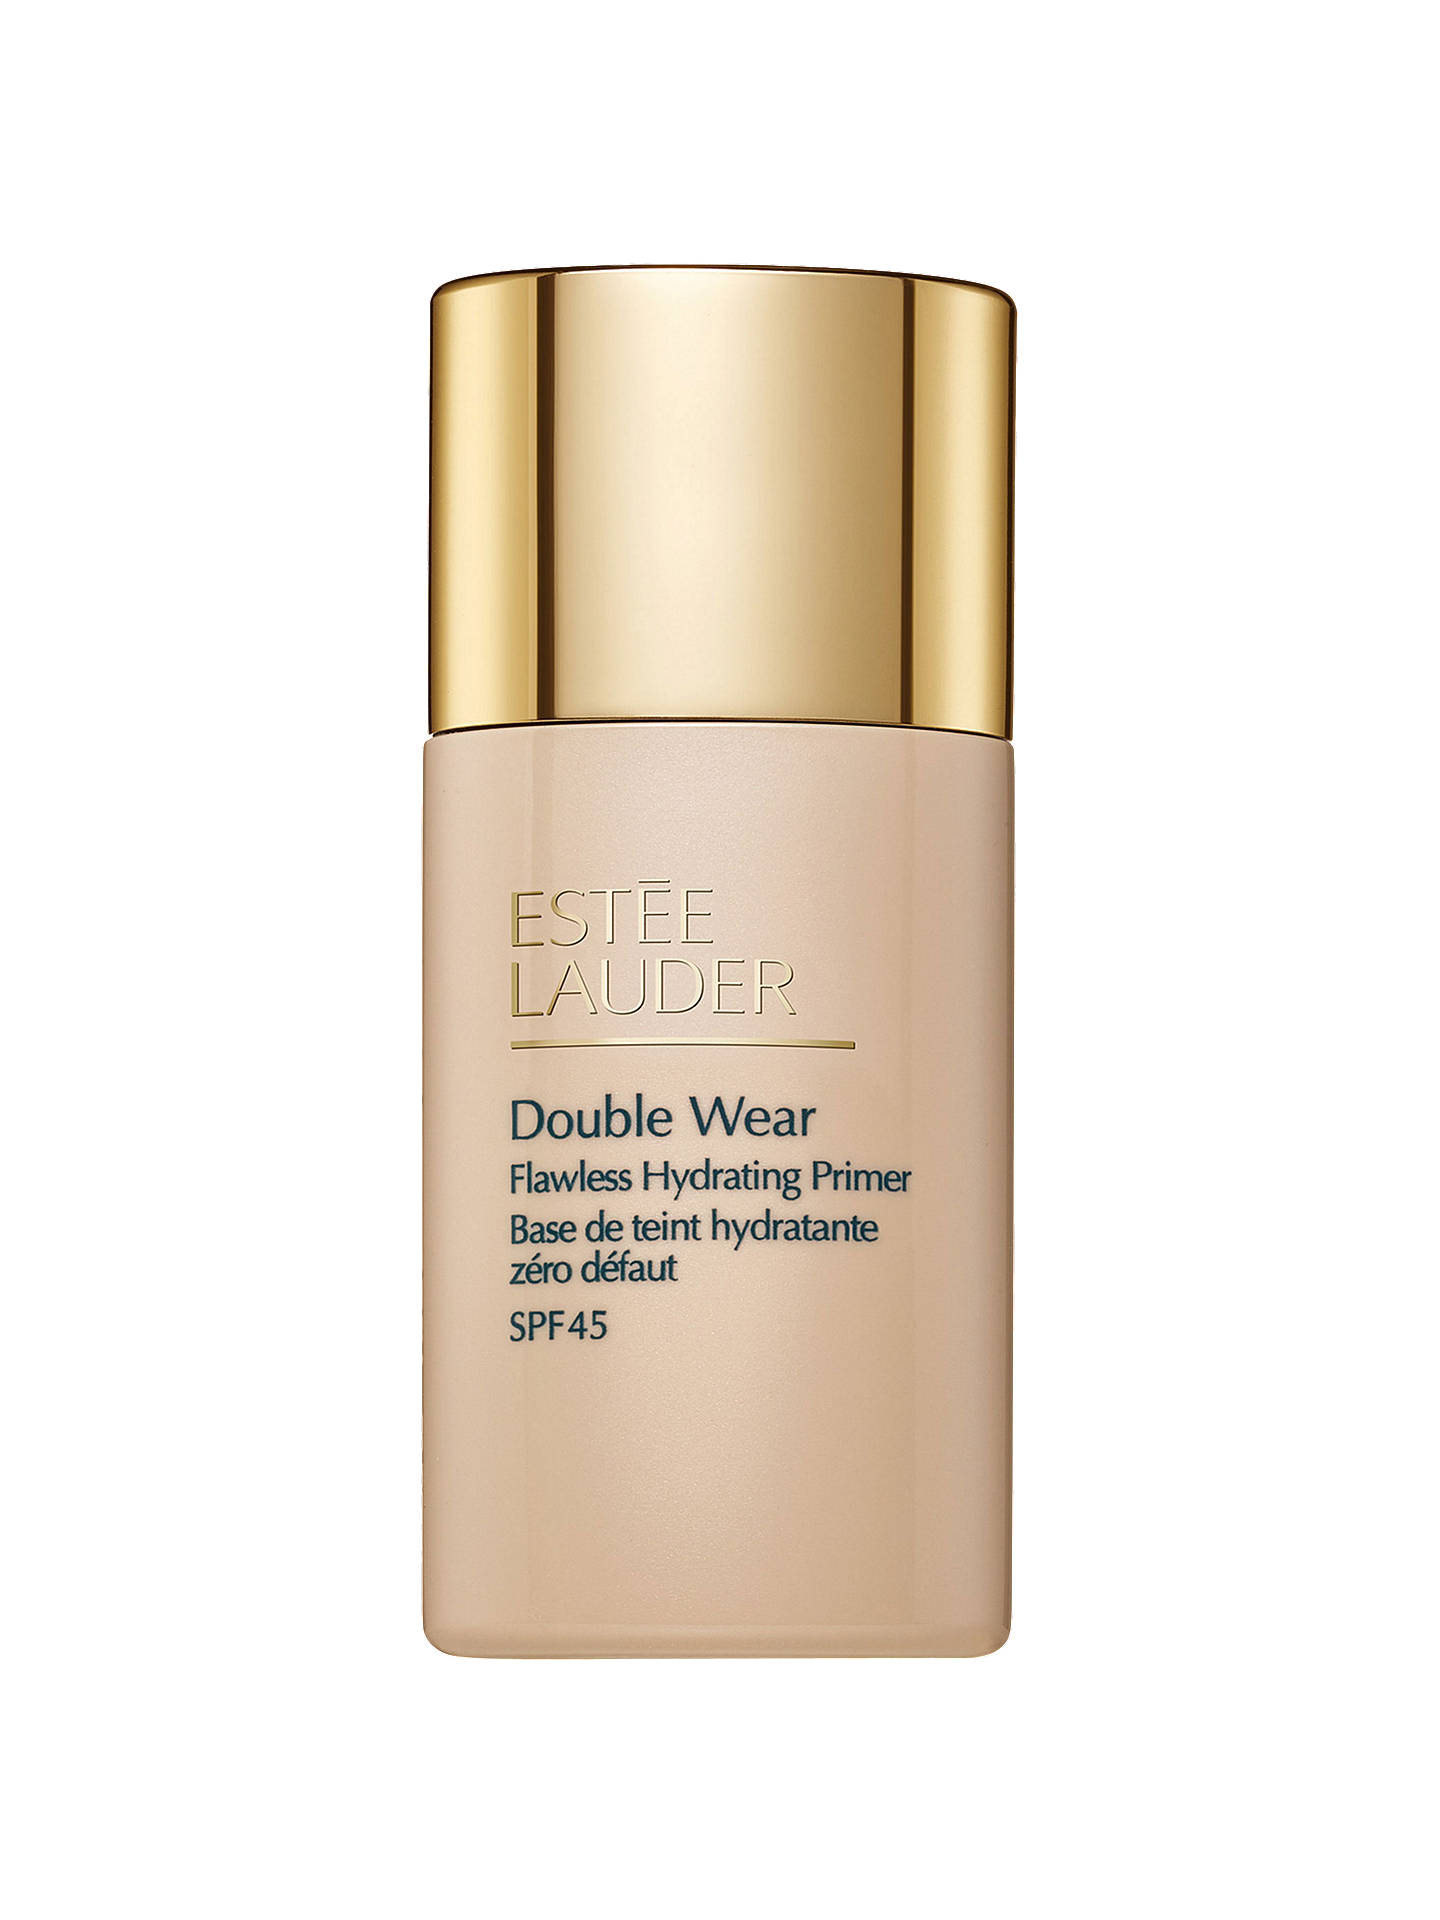 BuyEstée Lauder Double Wear Flawless Hydrating Primer SPF 45, 30ml Online at johnlewis.com